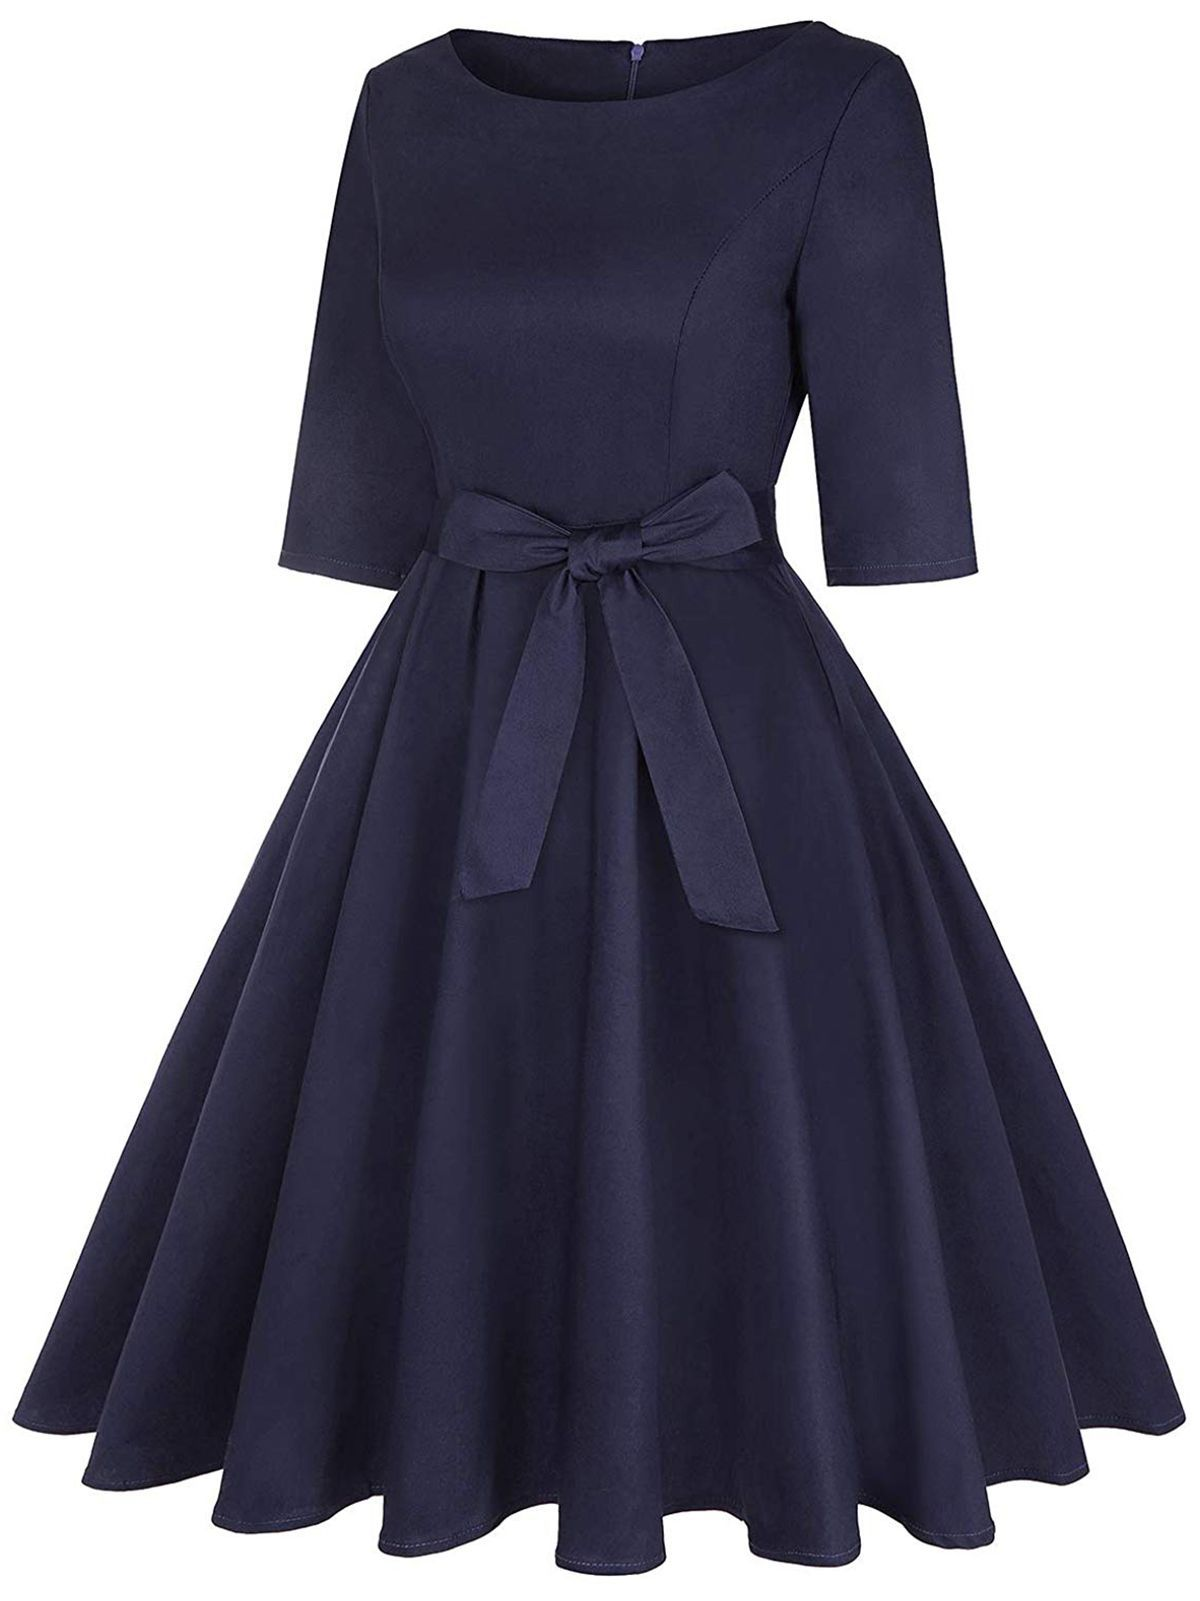 Navy Blue 1950s Solid Bow Swing Dress